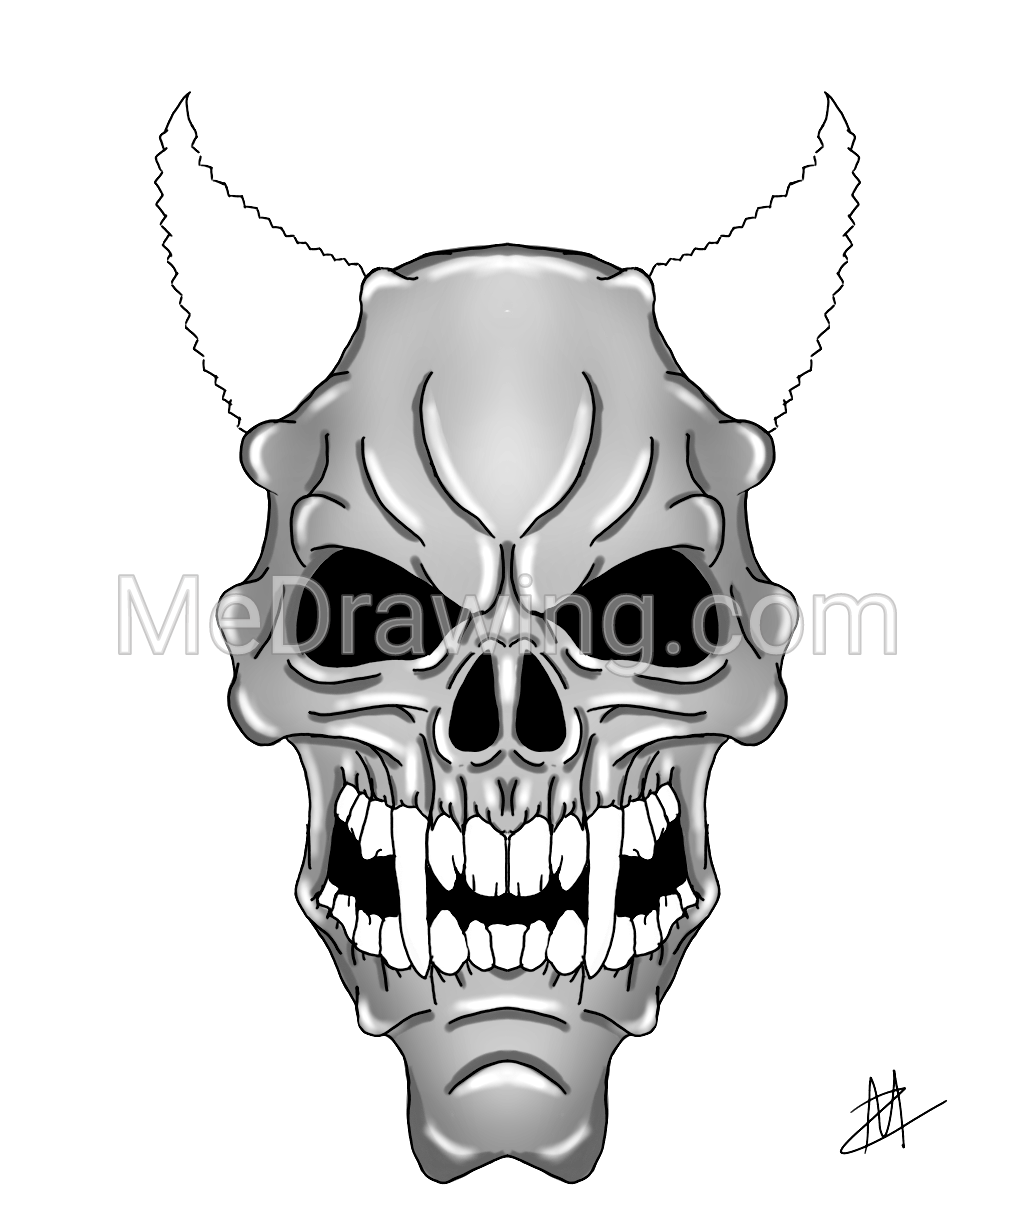 black and white skull drawings clipart best free zombie clipart images black and white free zombie clip art humorous